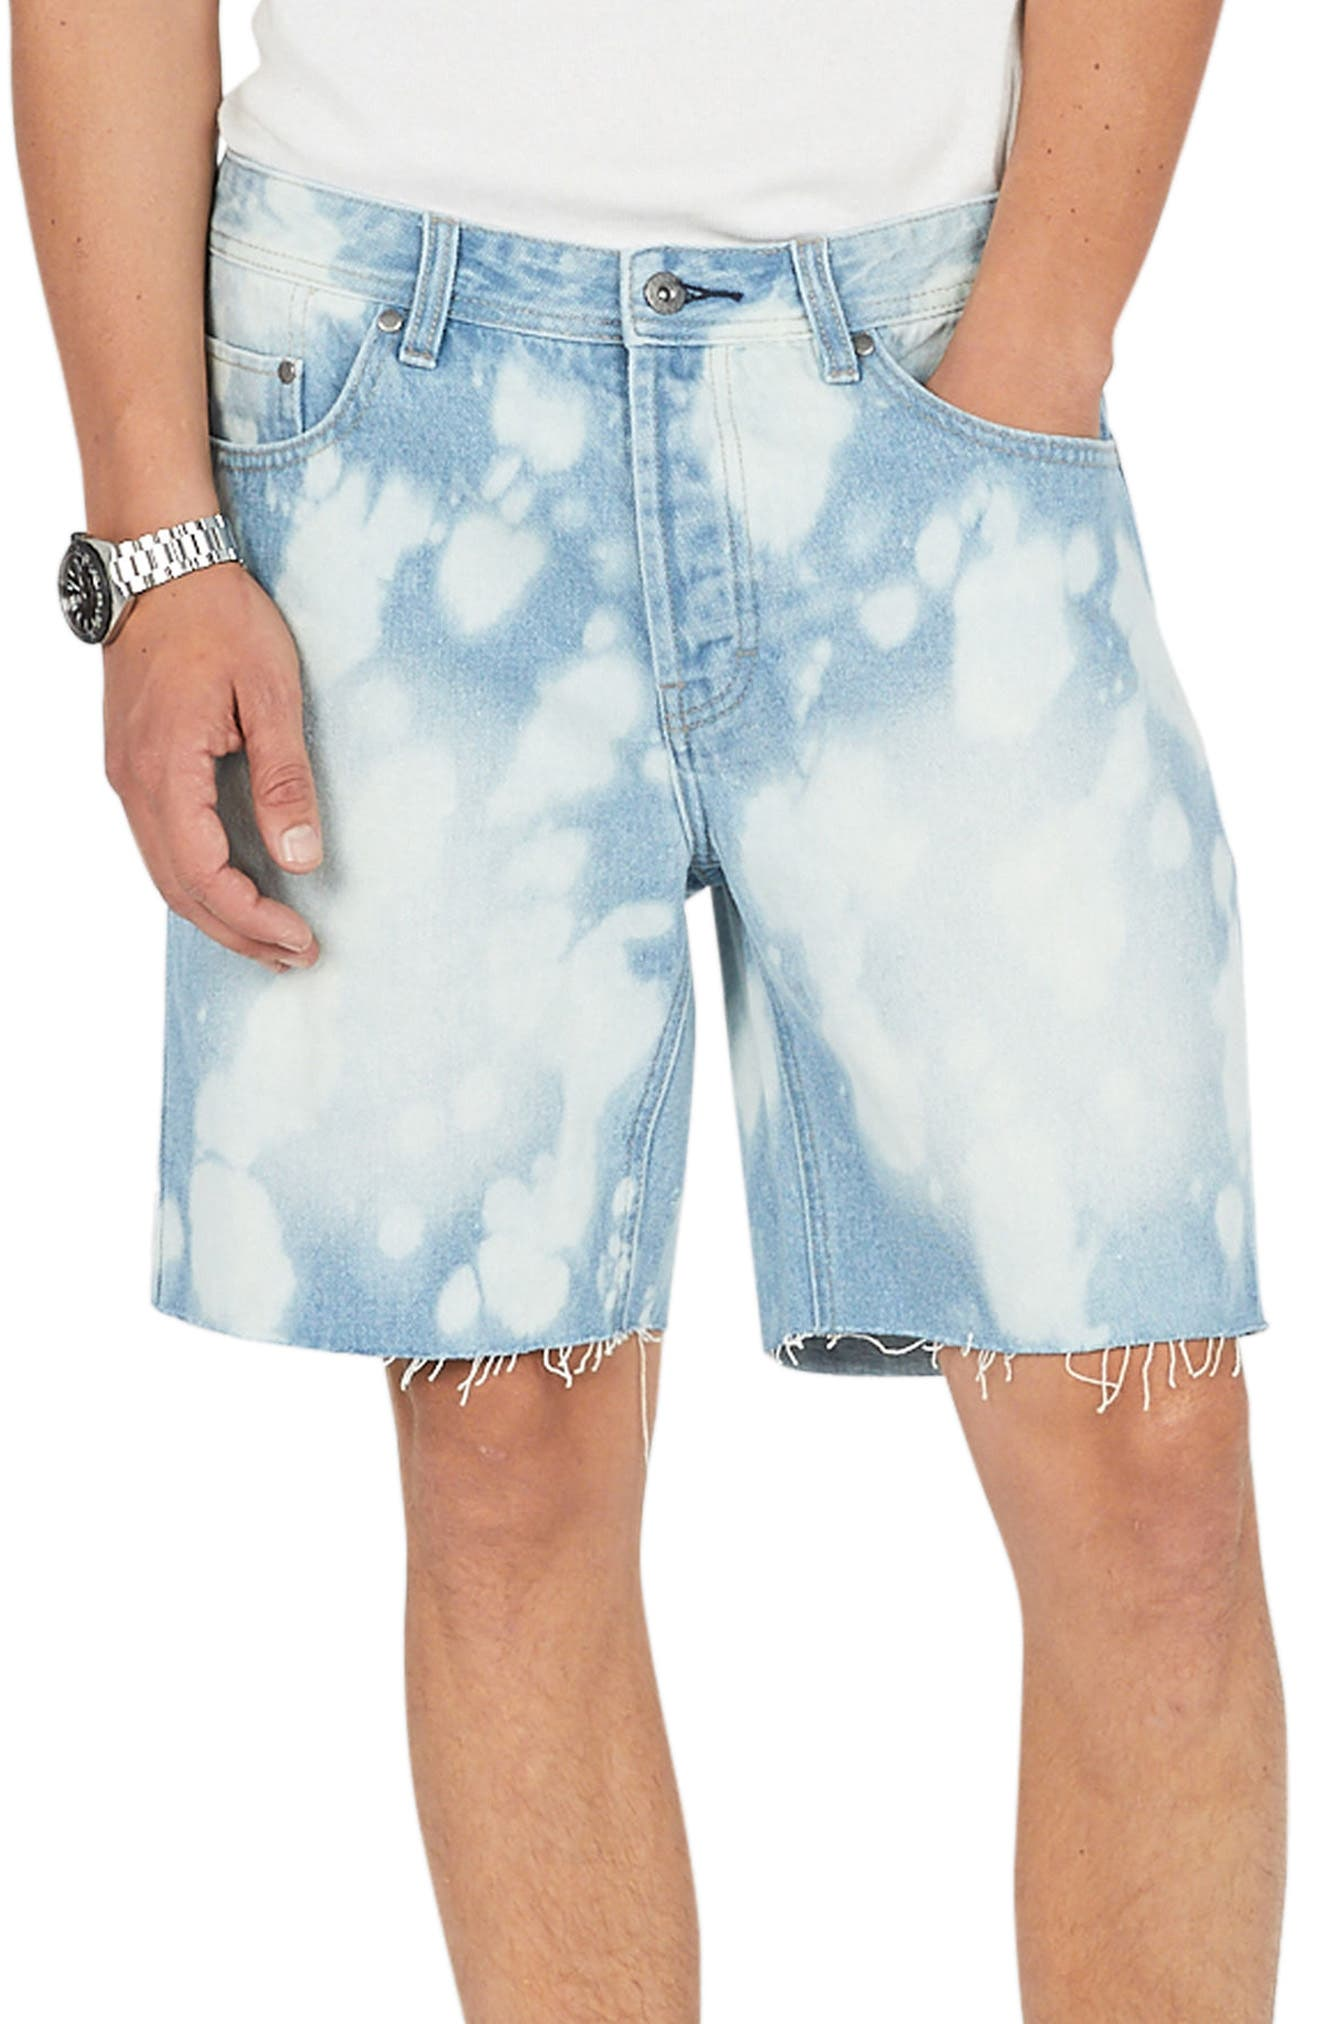 Barney Cools B. Relaxed Denim Shorts (Bleached Blue)